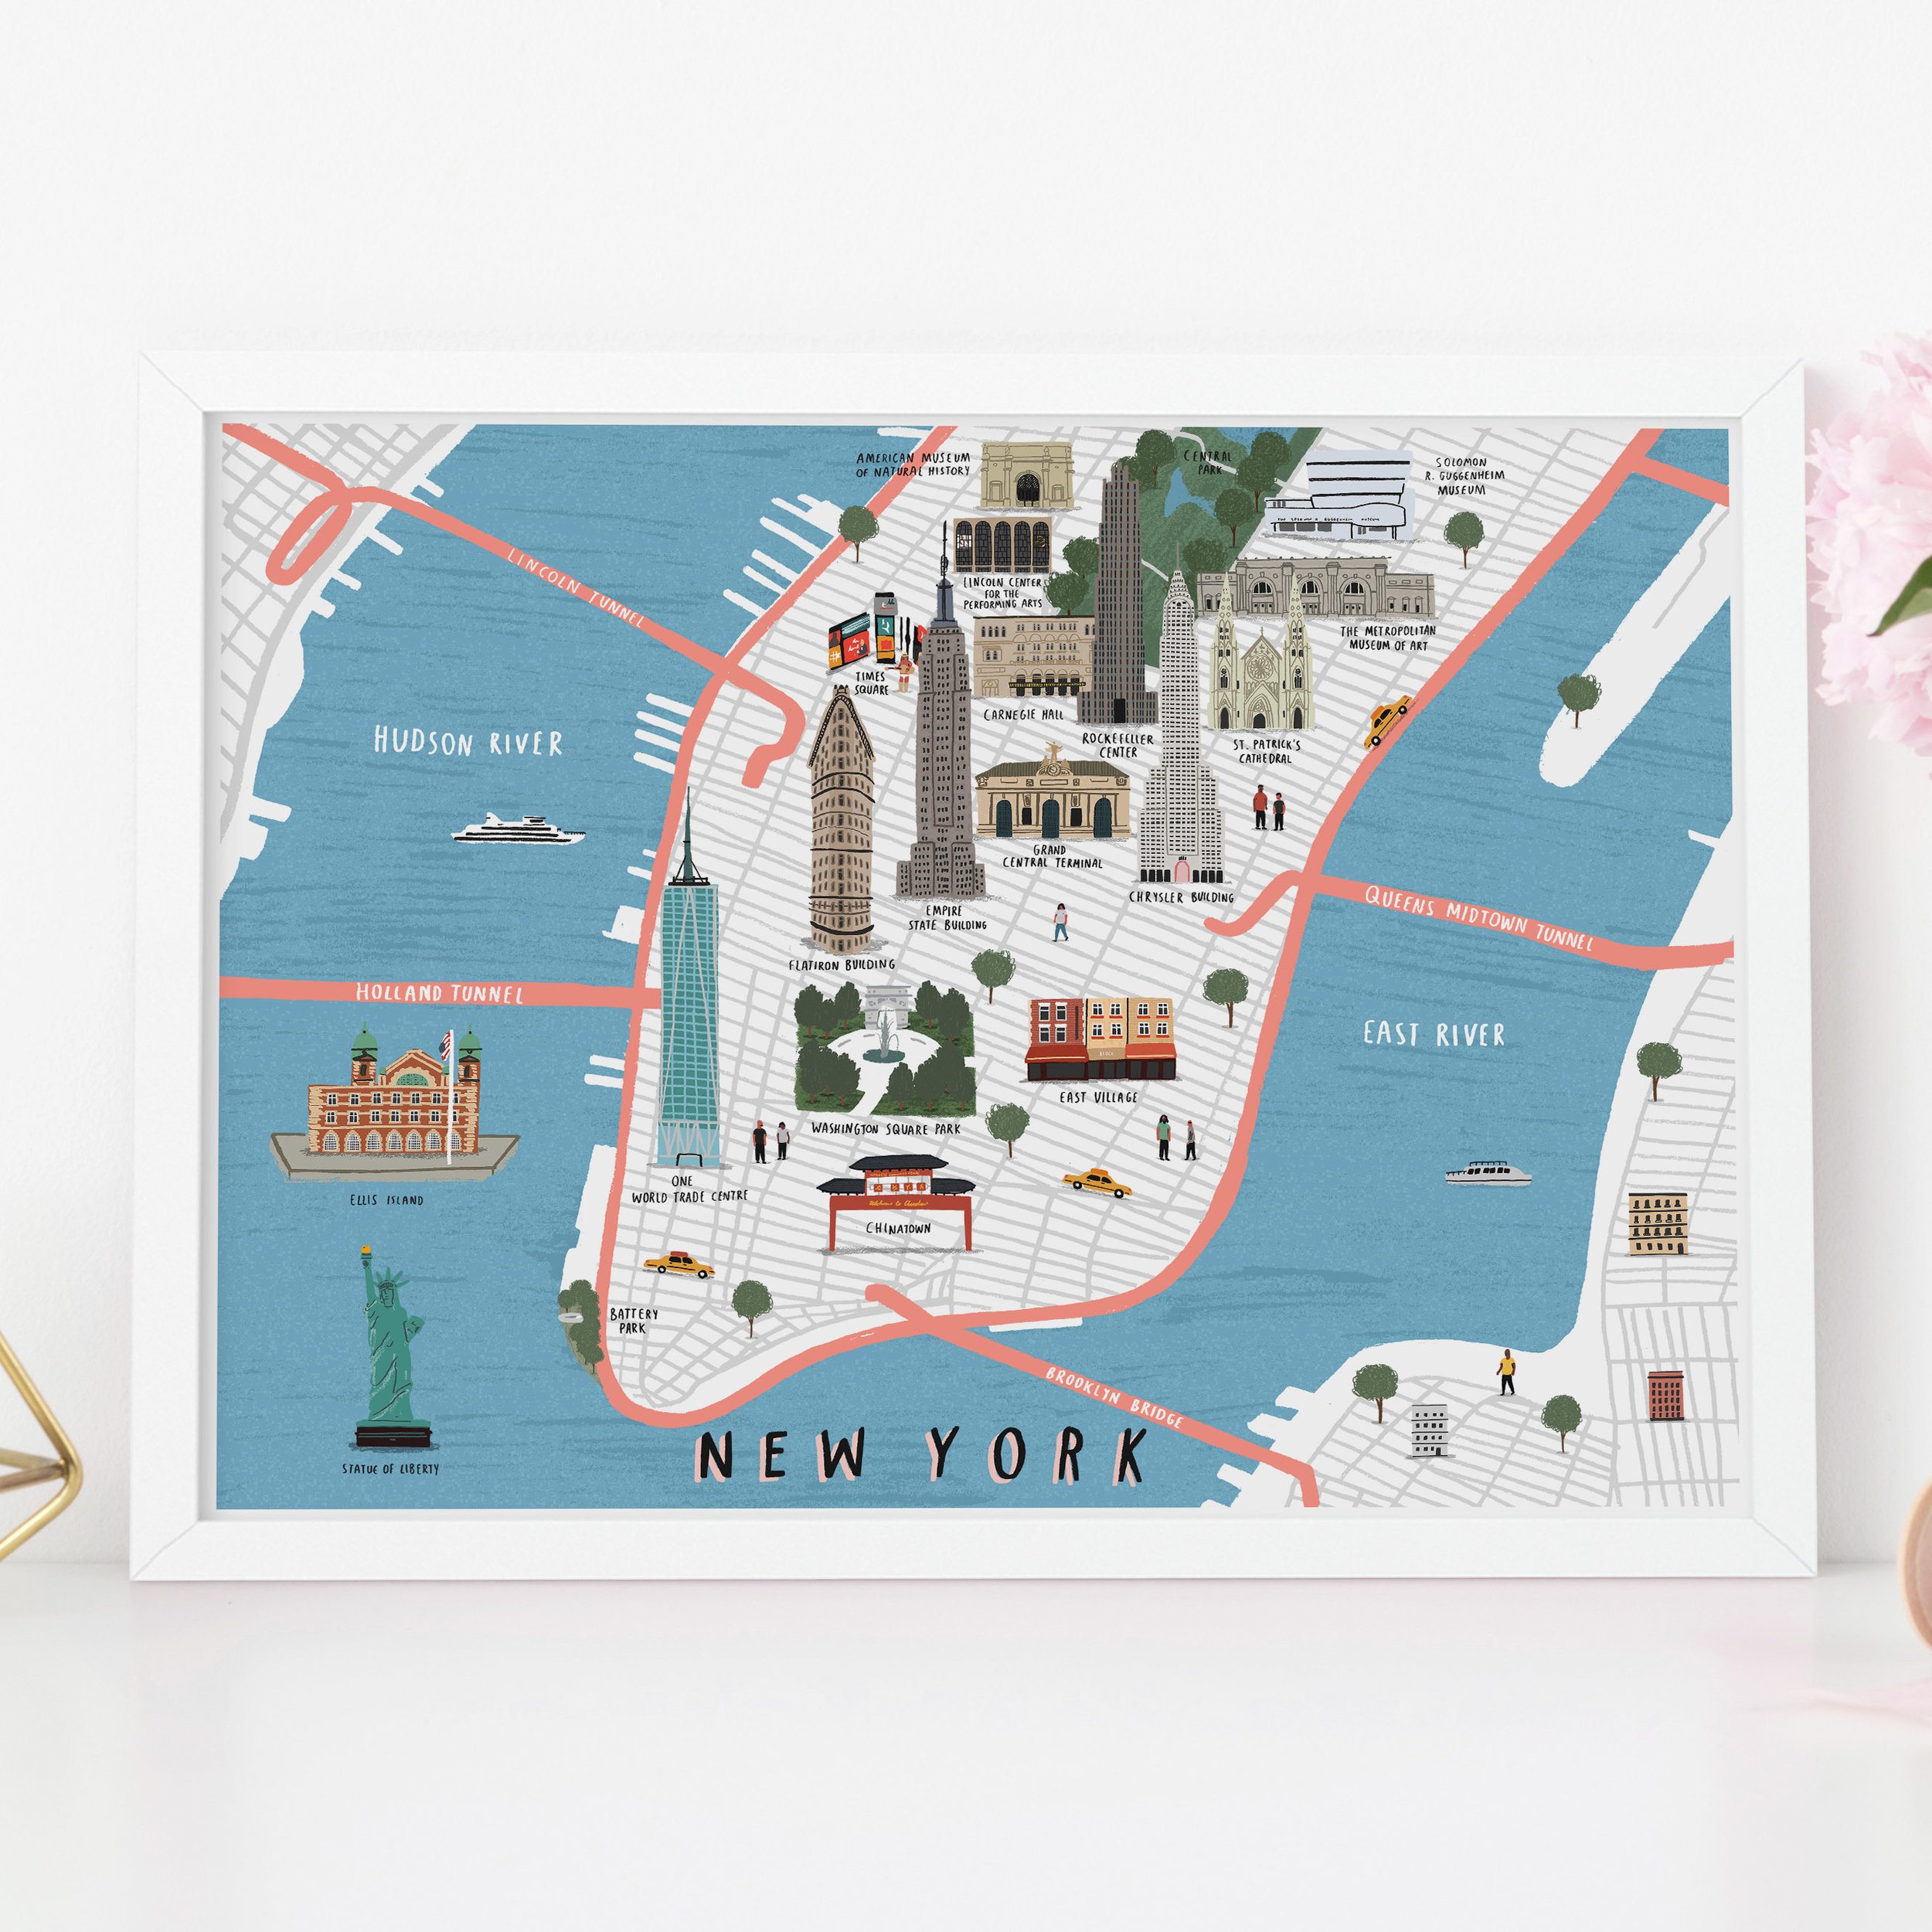 New York Map Print Alex Foster